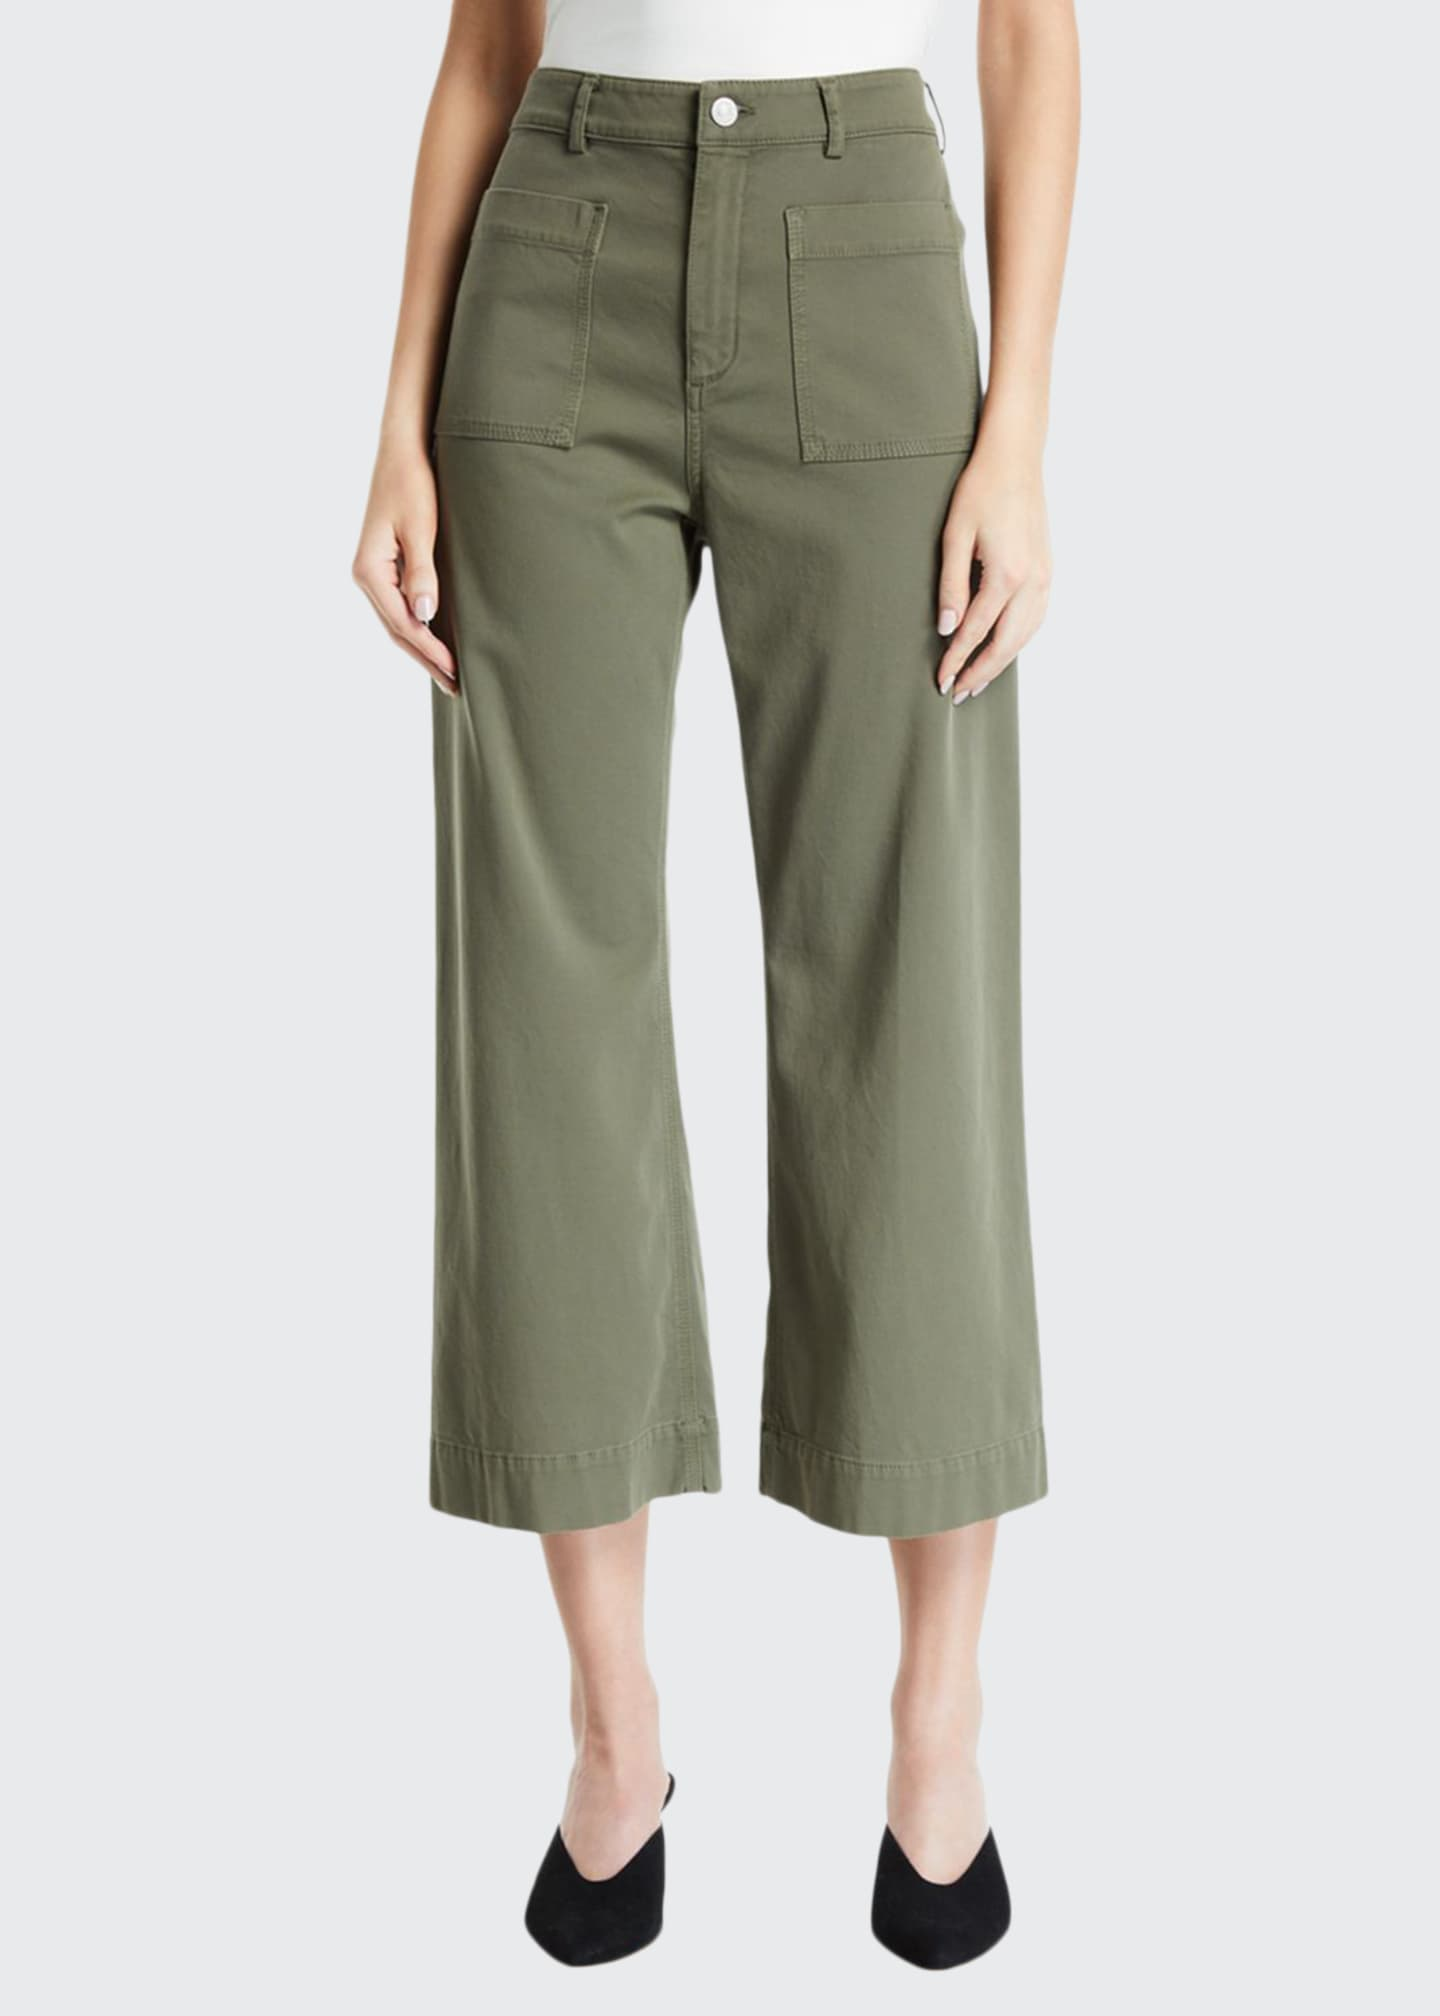 Fallon Cropped Pants